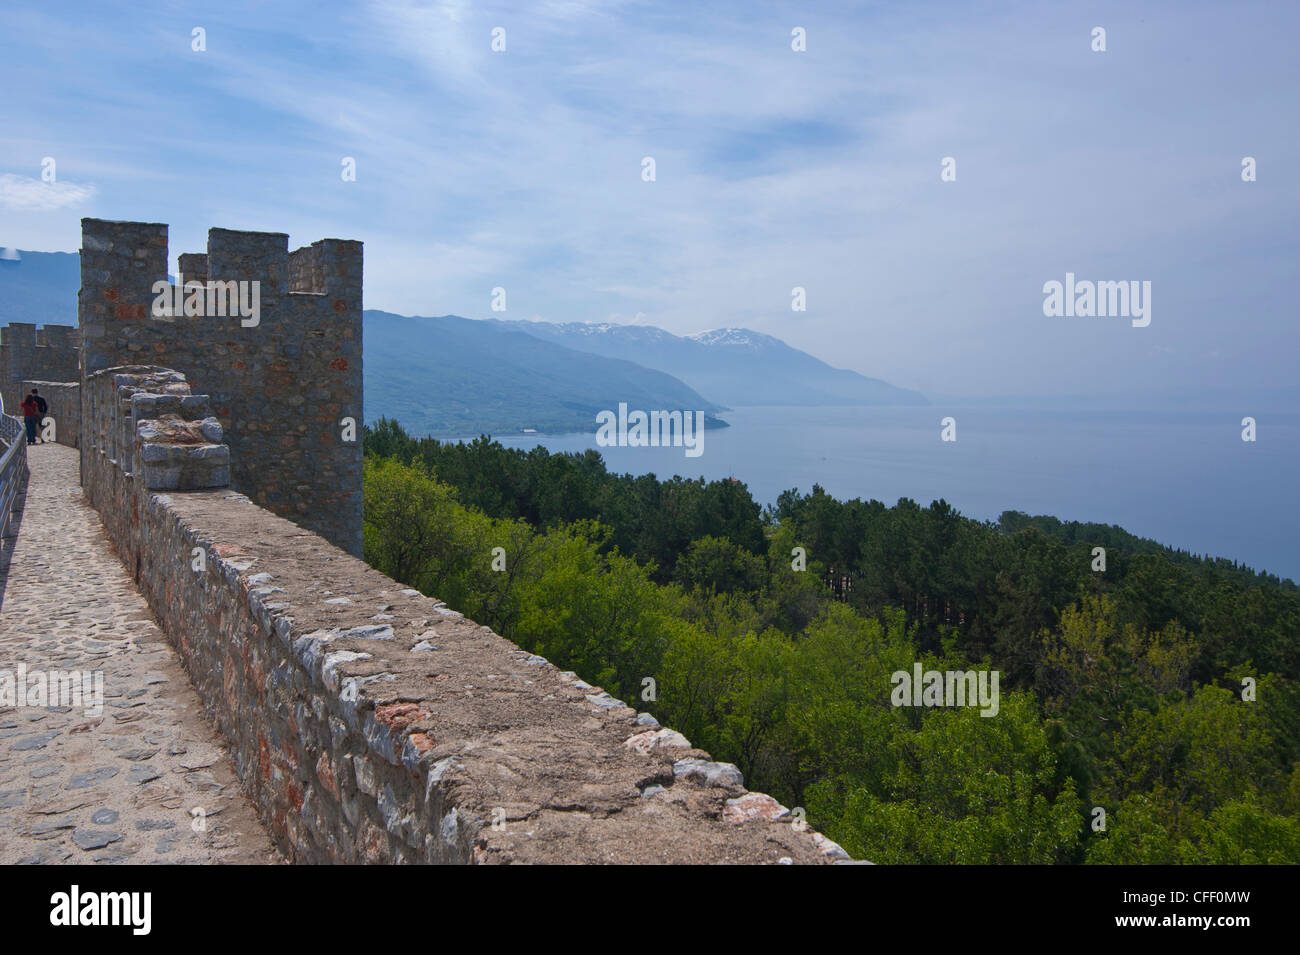 Castle at Ohrid,Lake Ohrid, UNESCO World Heritage Site, Macedonia, Europe - Stock Image